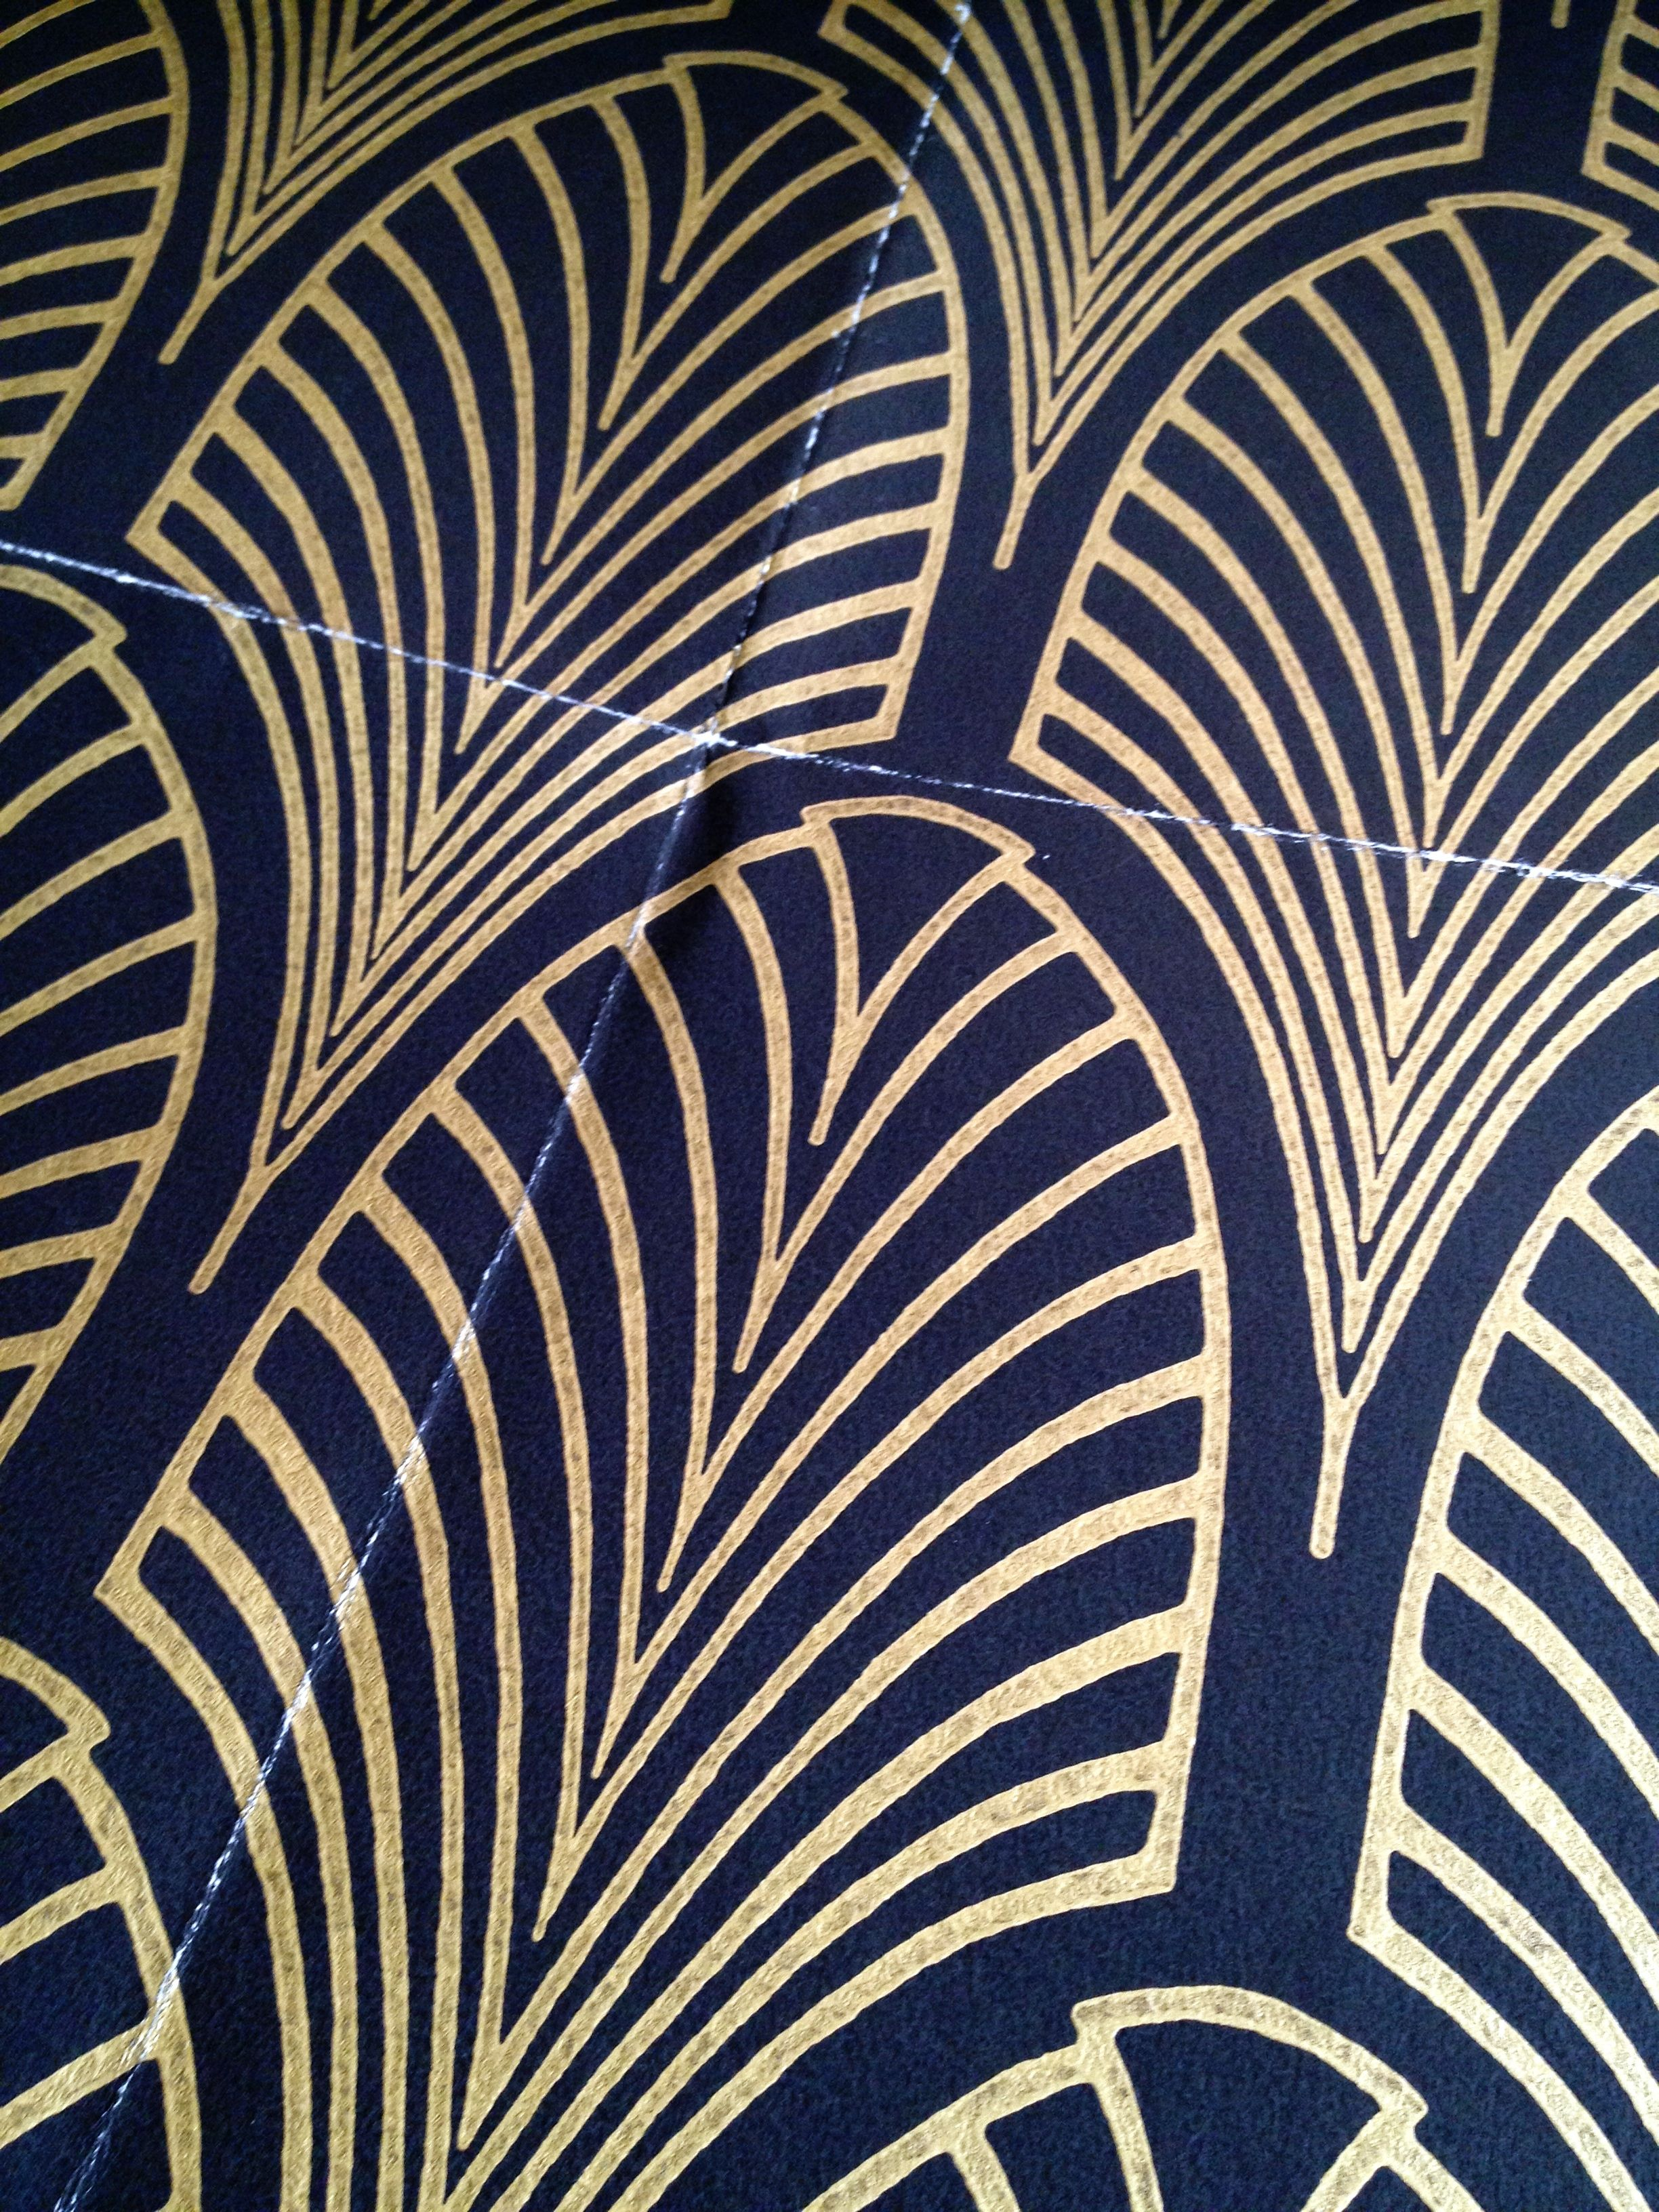 Black and gold Art Deco wallpaper from Cole & Son. Of